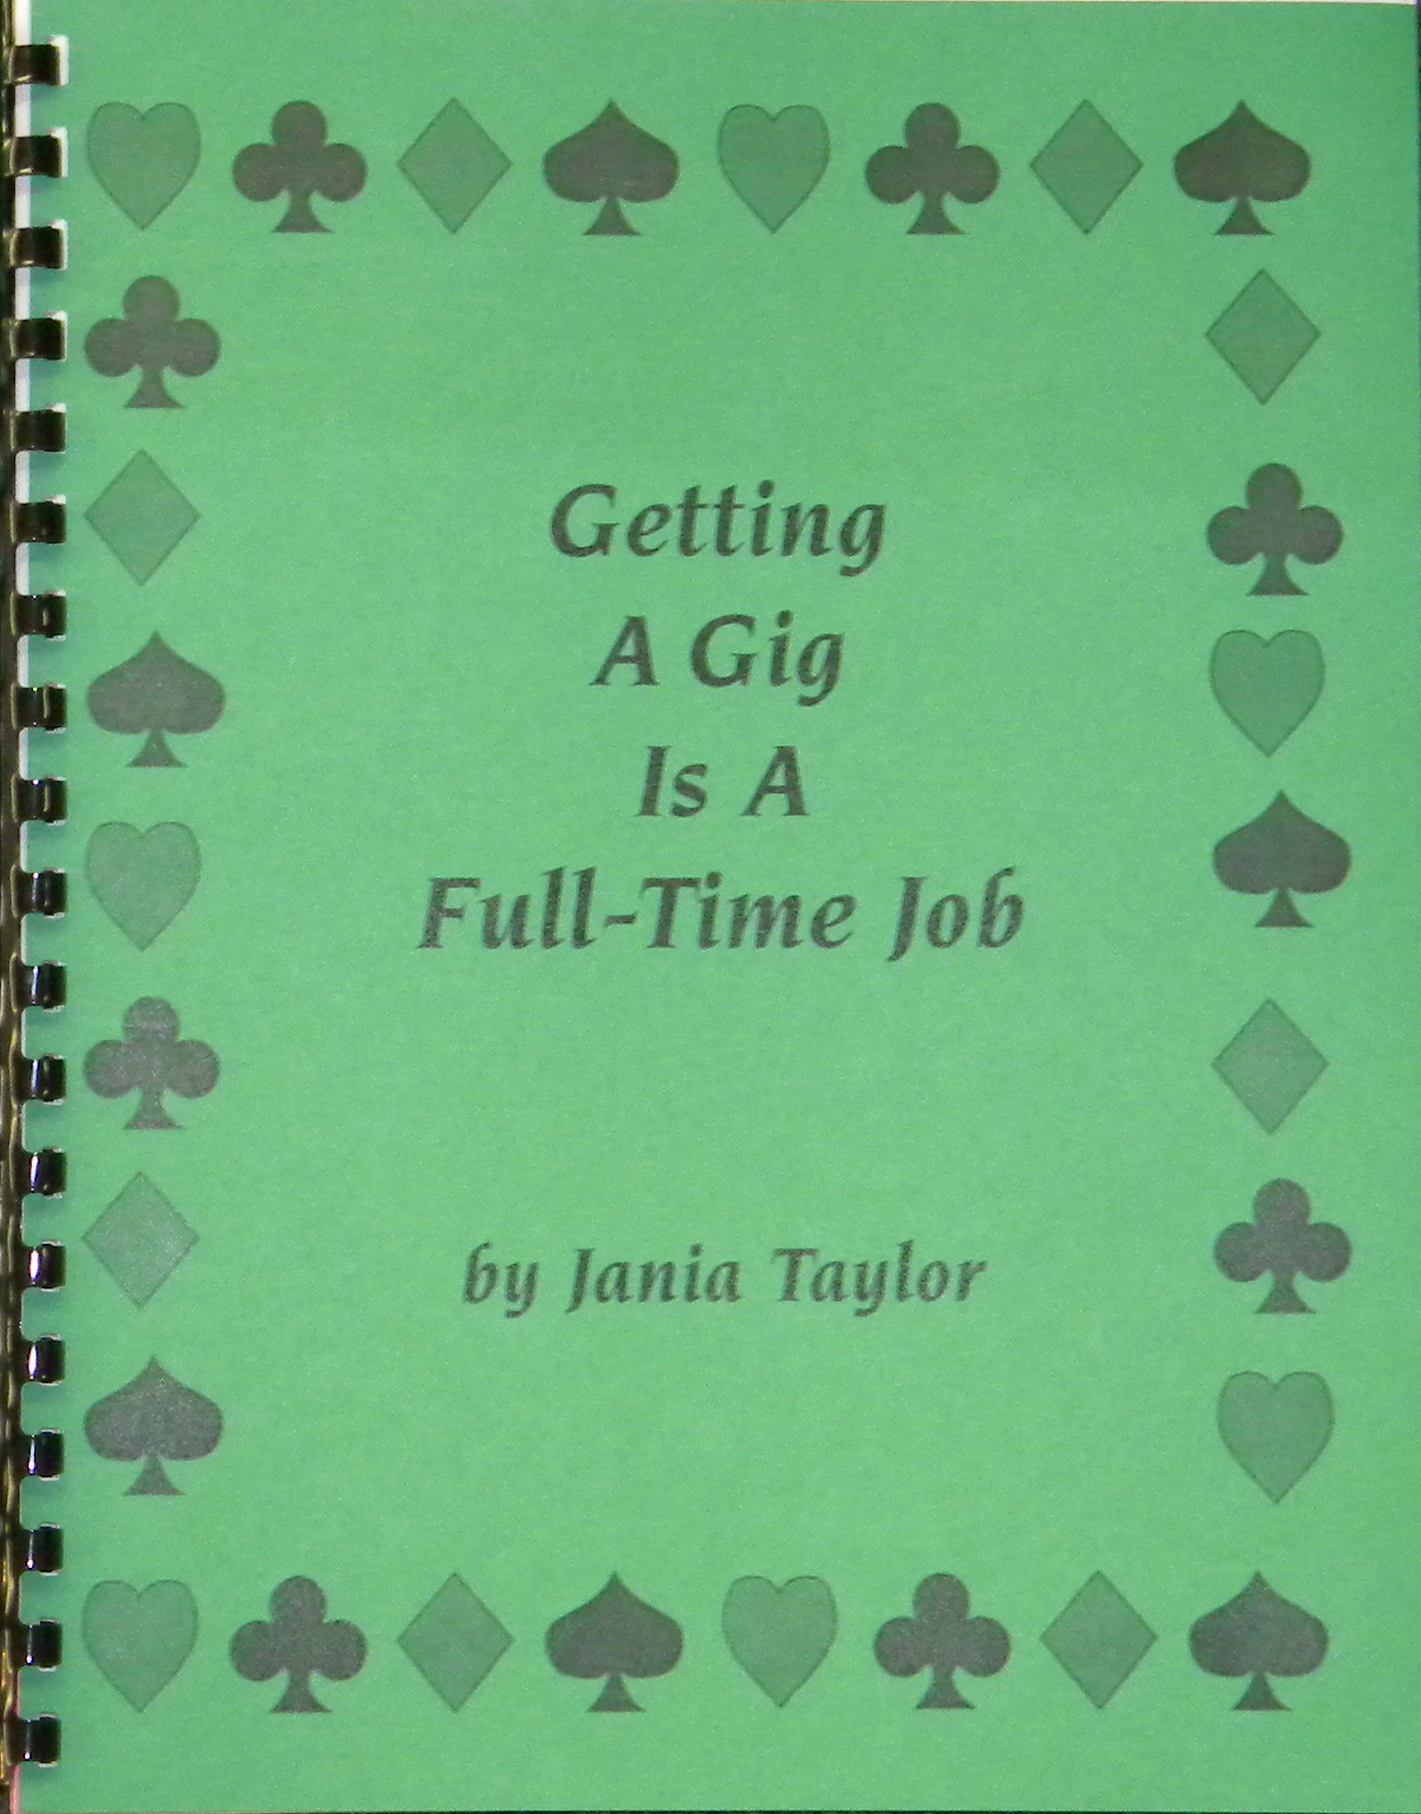 GETTING A GIG IS A FULL-TIME JOB